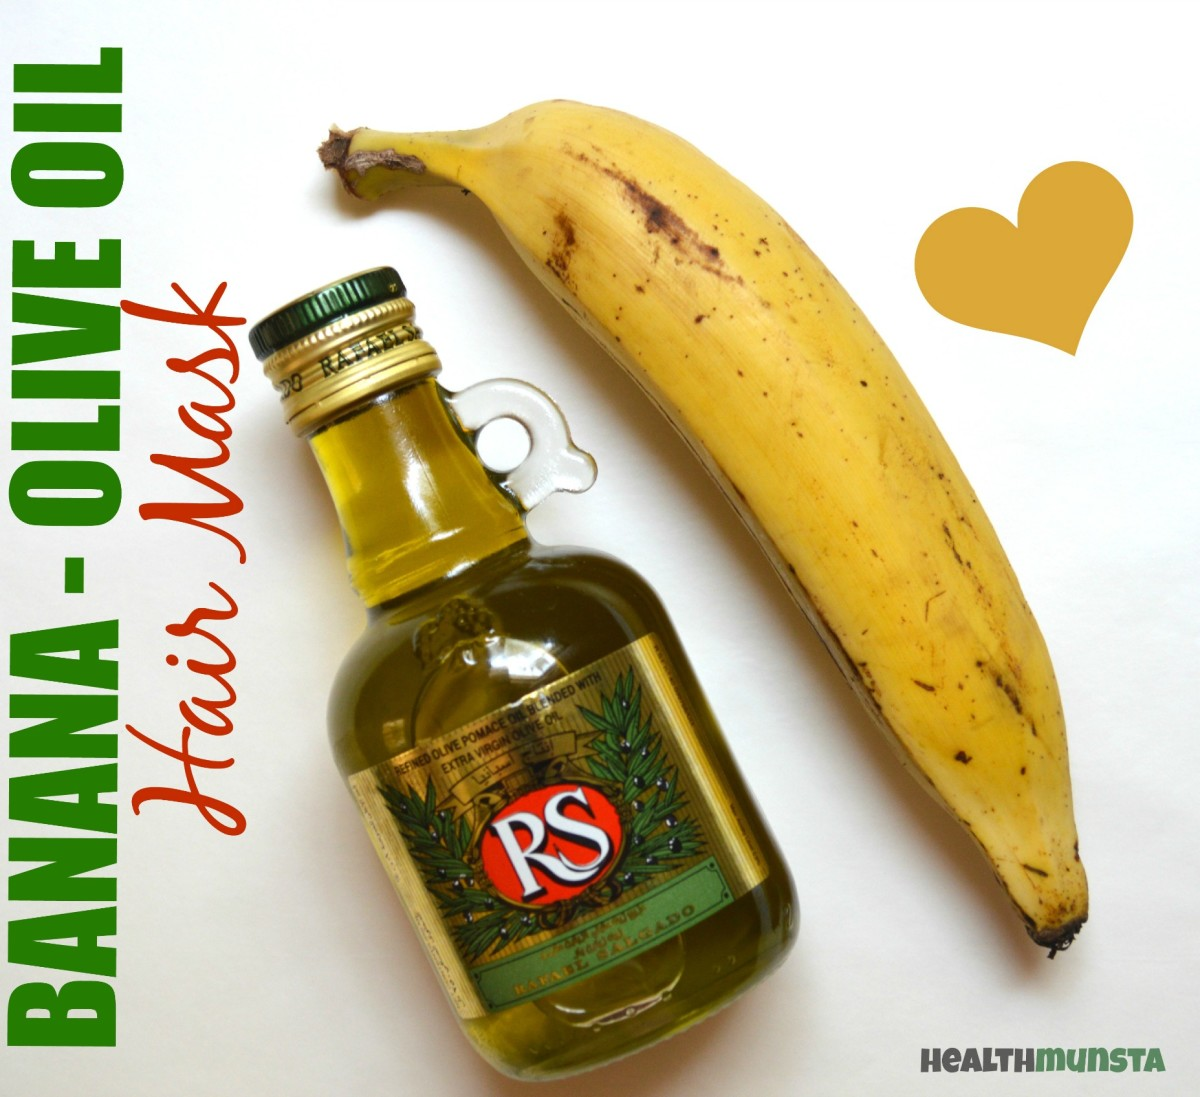 Olive oil is not only a great conditioner, but also repairs damaged hair shafts. This banana olive oil hair mask will add shine, volume and silkiness to dull hair!